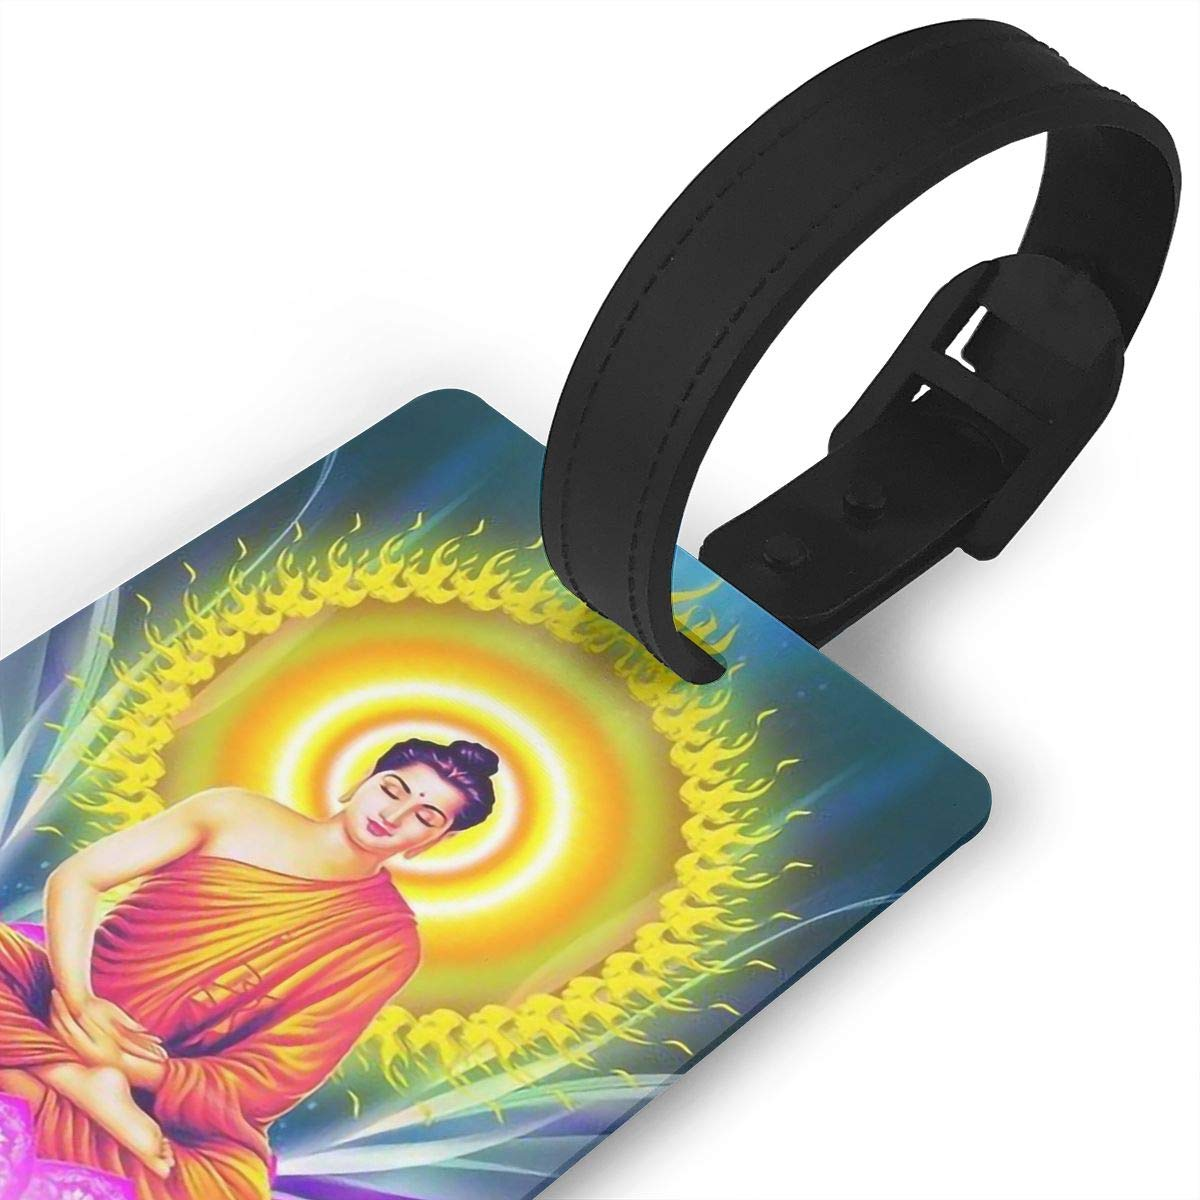 Buddhism Handbag Tag For Travel Tags Accessories 2 Pack Luggage Tags